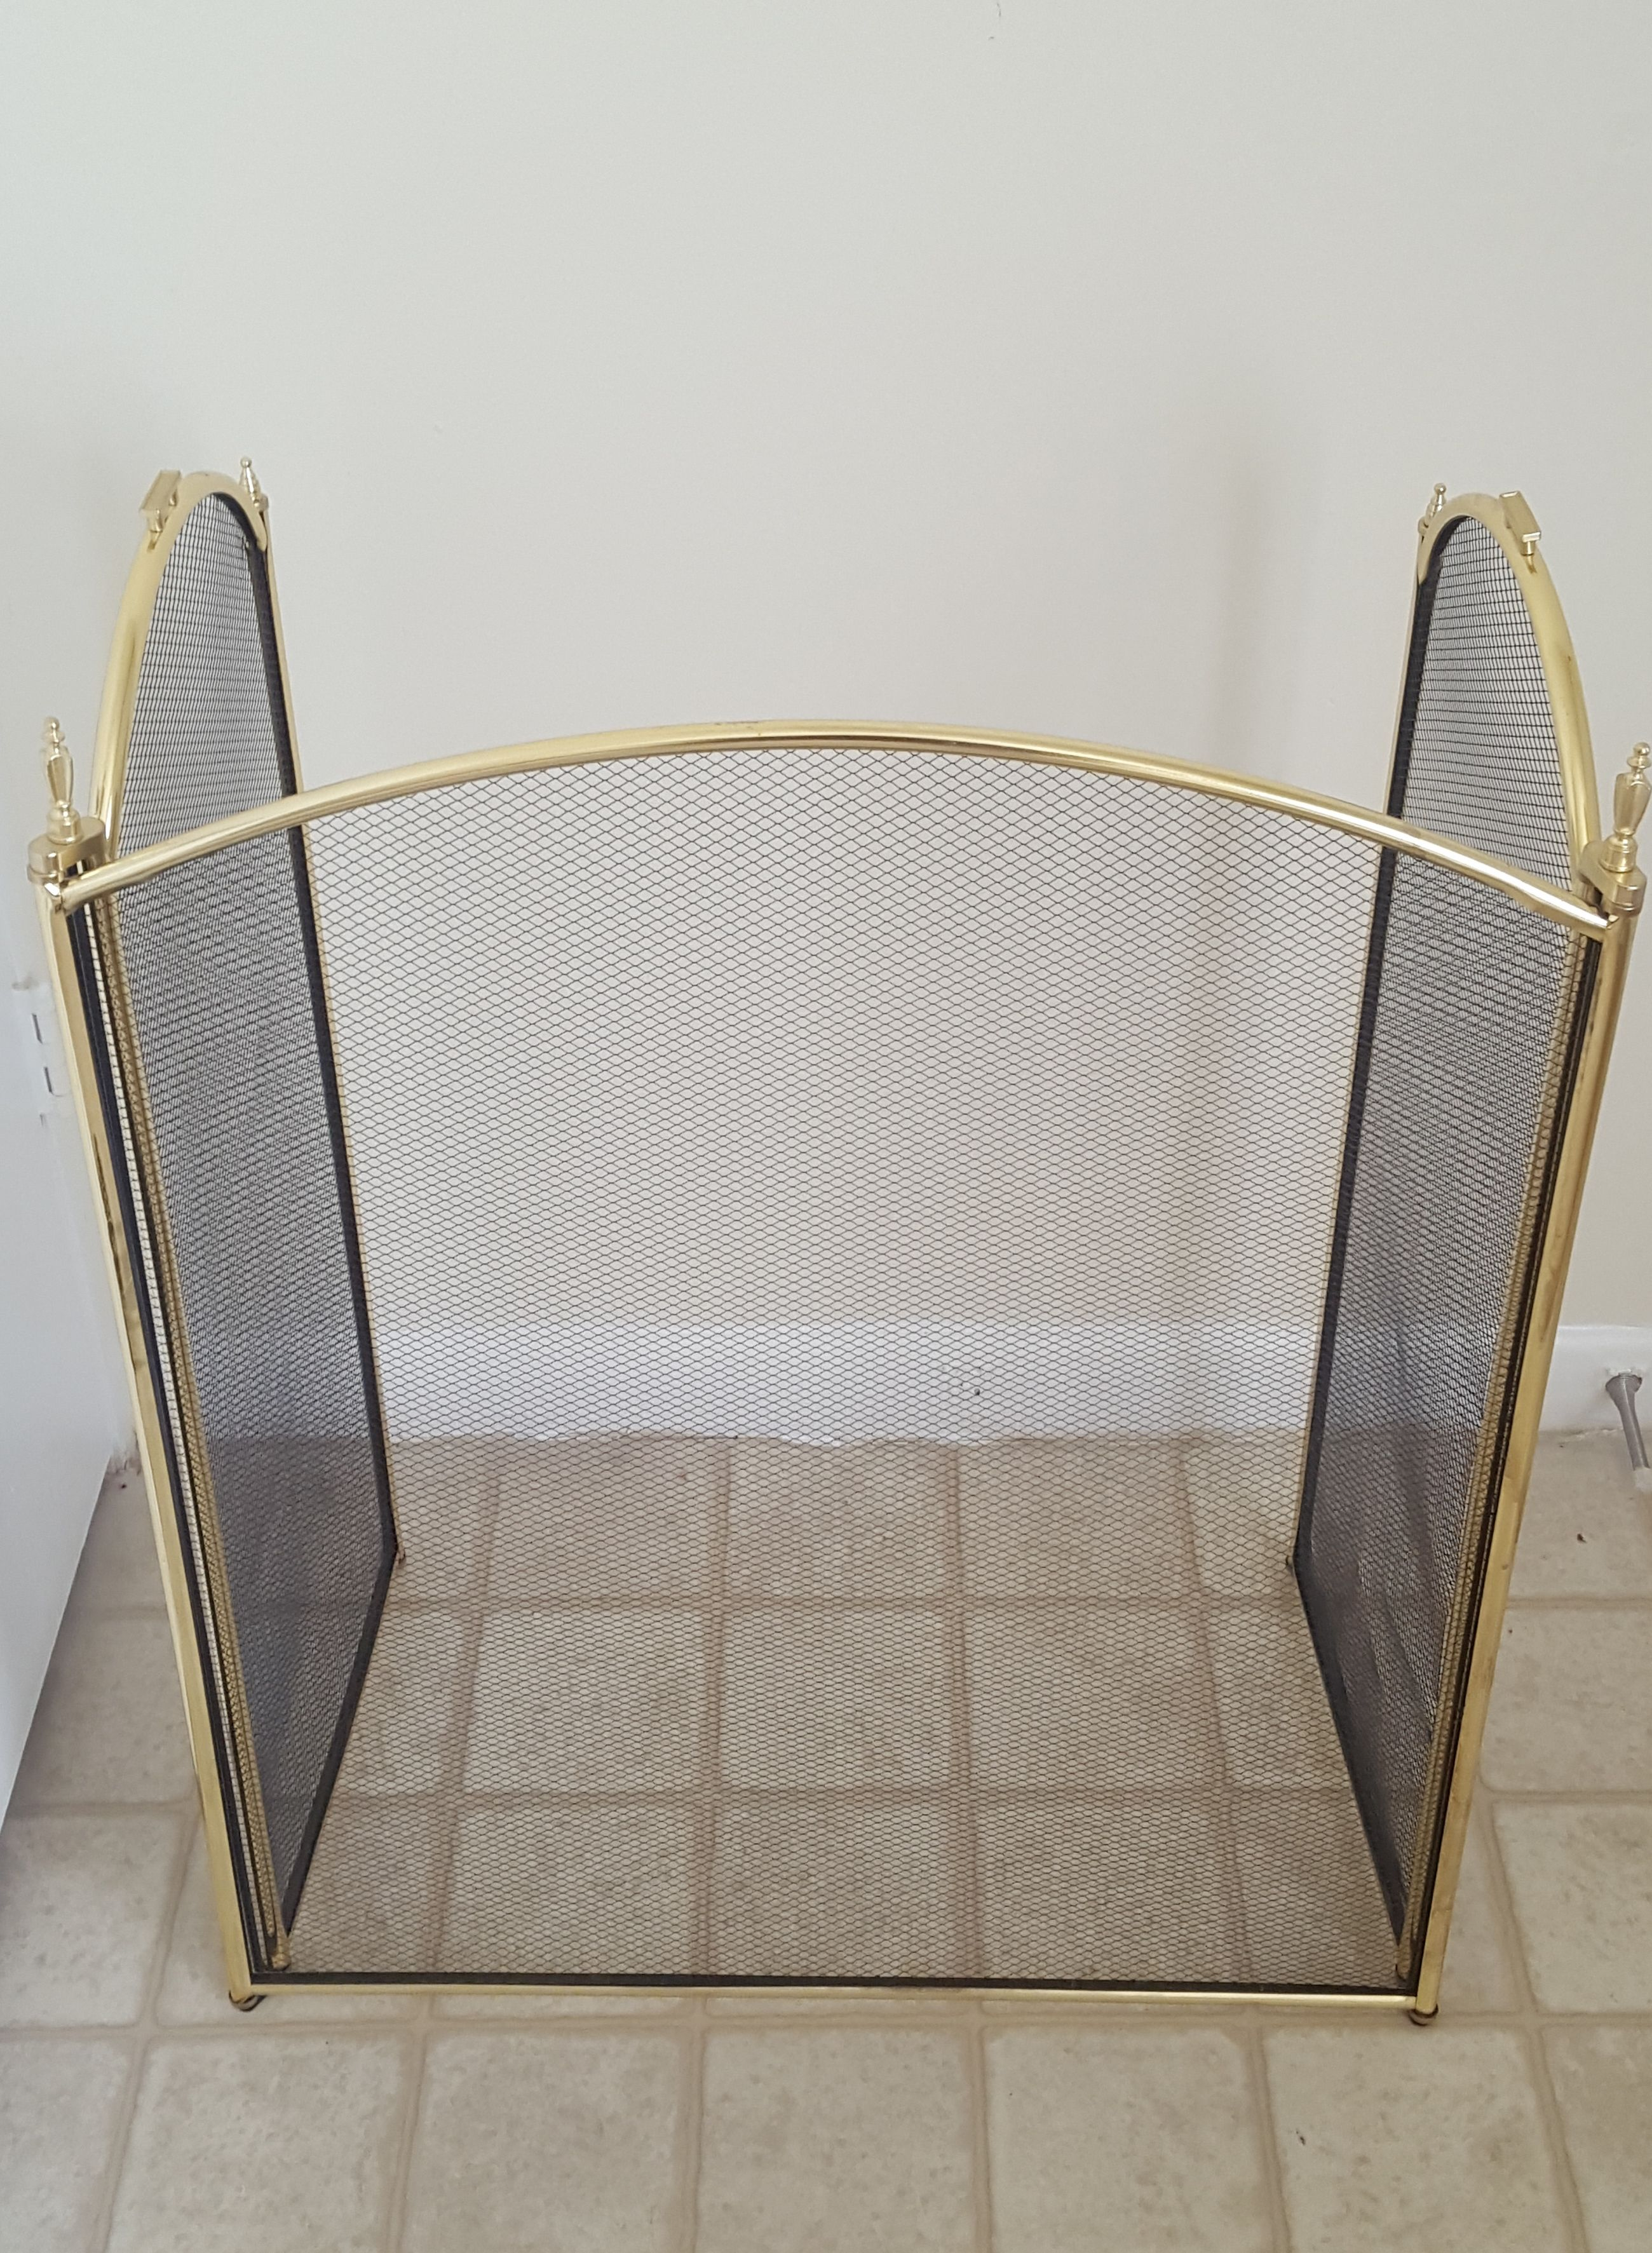 light weight gold colored 3 panel fireplace screen 55 obo vfd